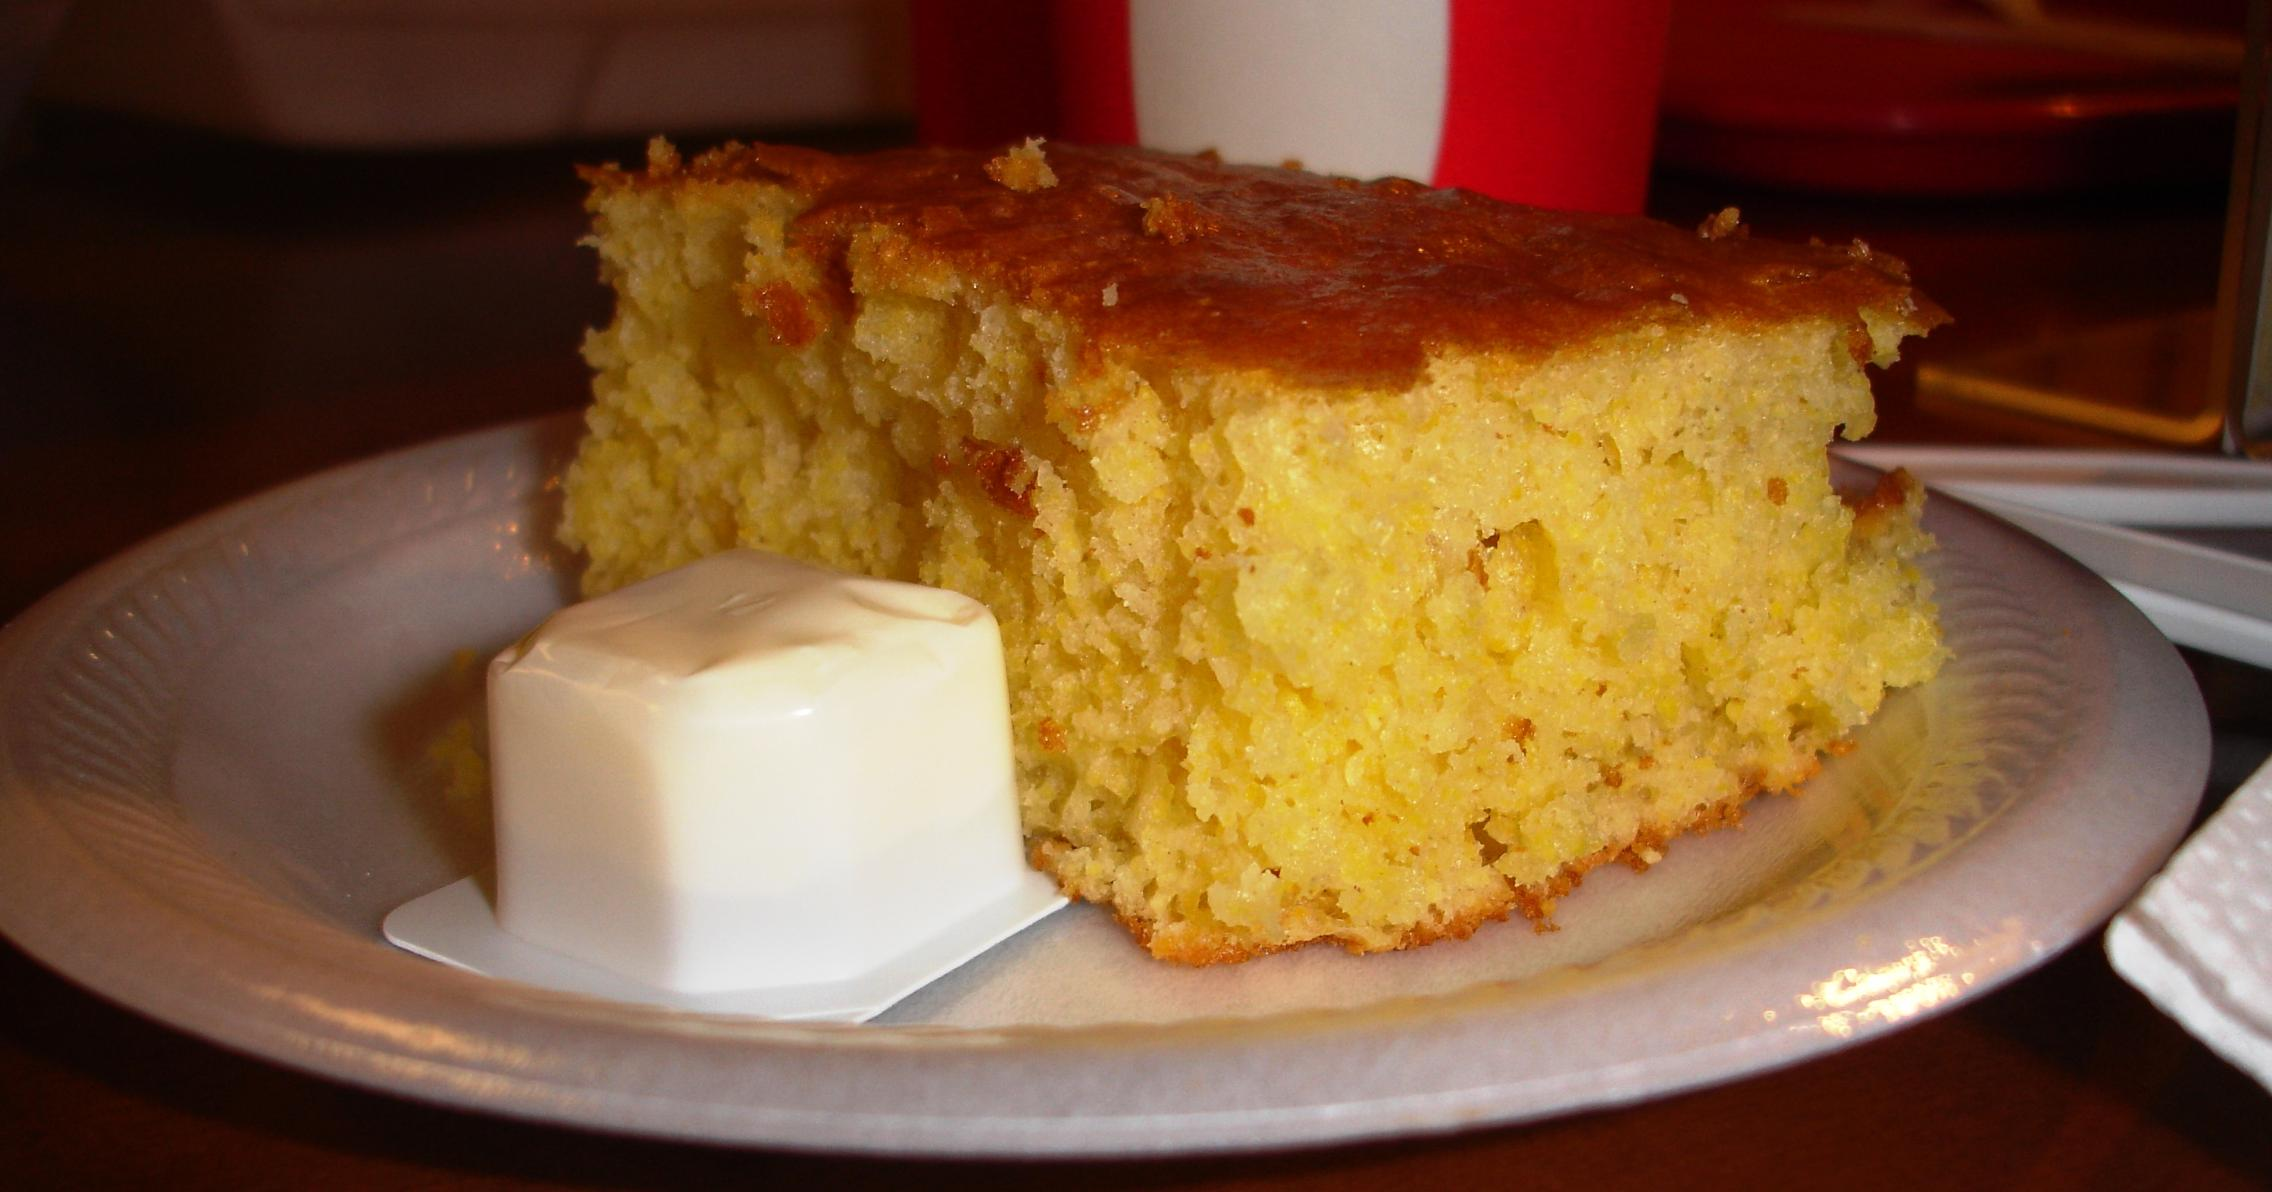 The homemade cornbread goes particularly well with this barbecue.